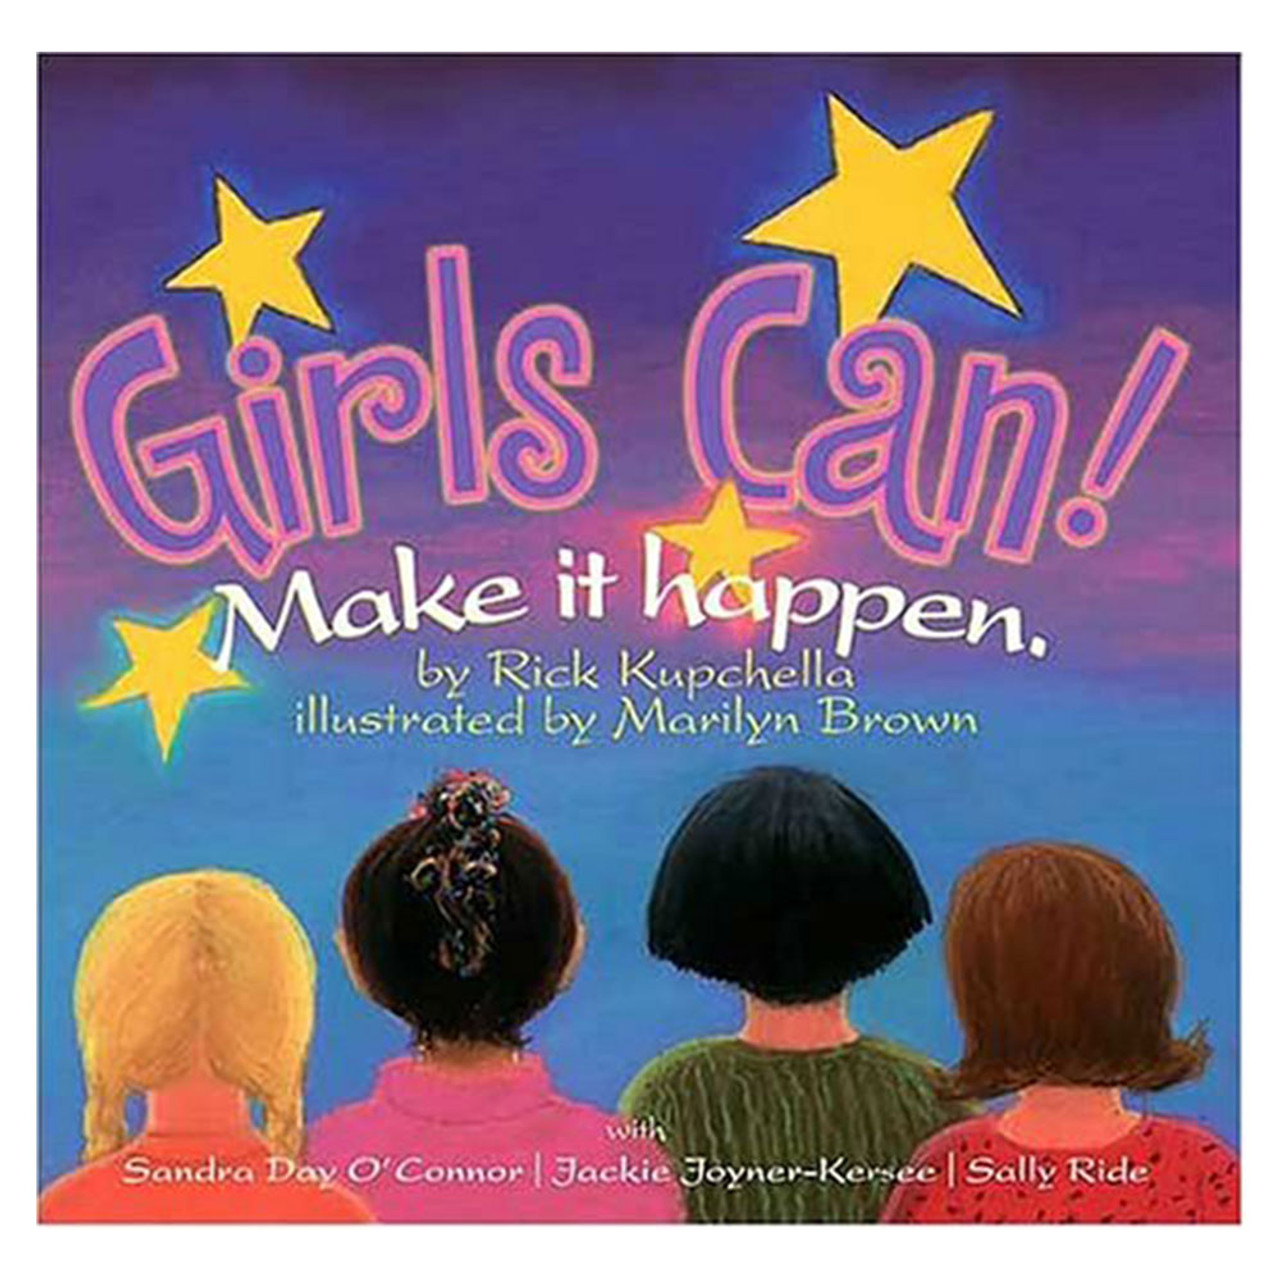 'Girls Can!' Book